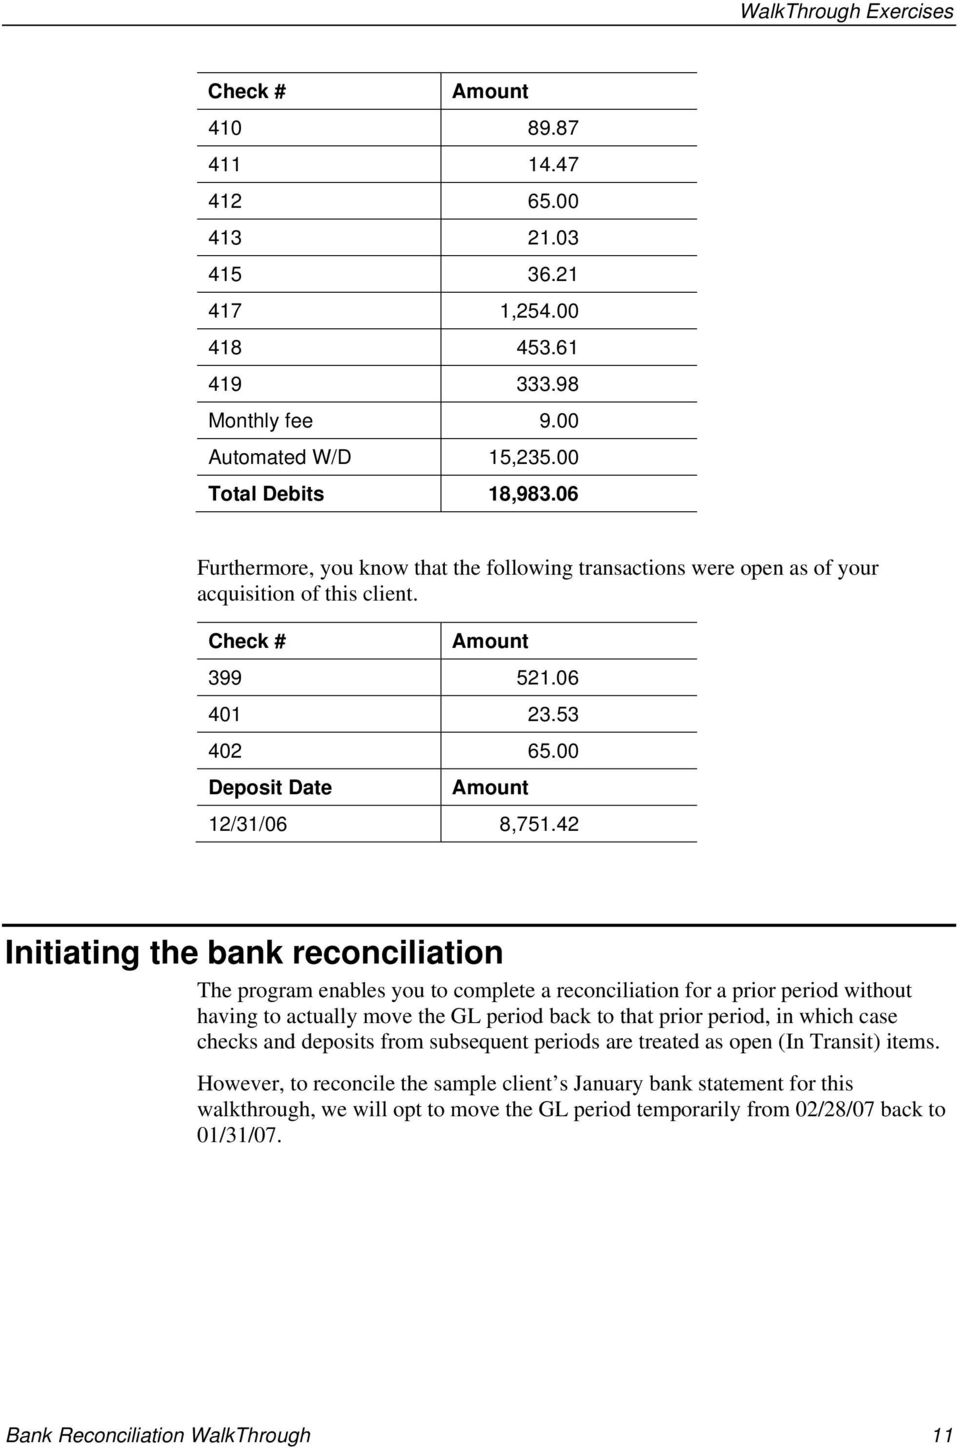 42 Initiating the bank reconciliation The program enables you to complete a reconciliation for a prior period without having to actually move the GL period back to that prior period, in which case